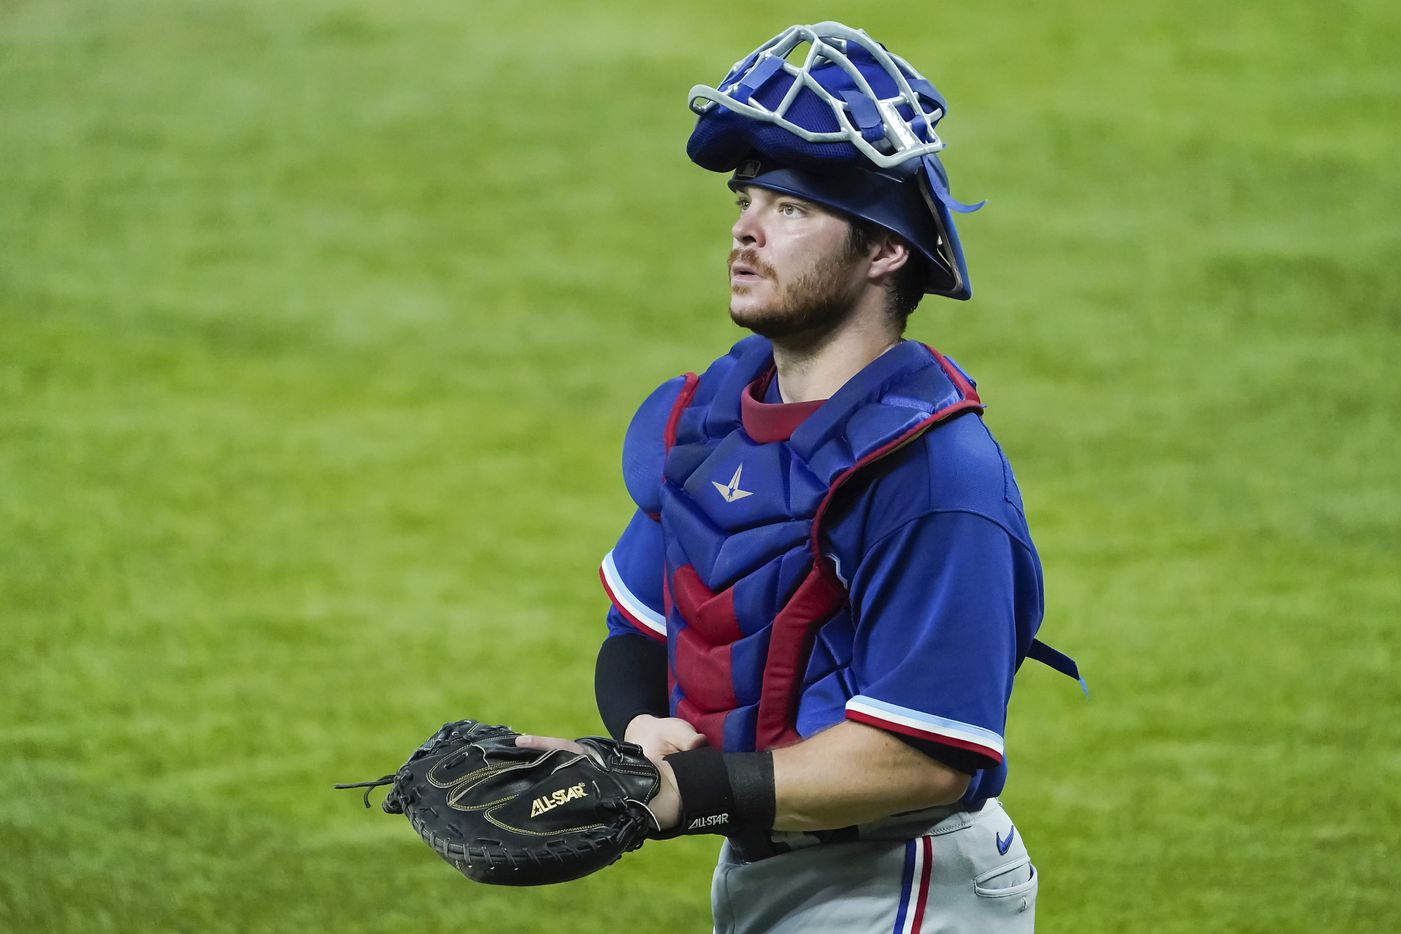 Texas Rangers catcher Matt Whatley looks out on the stadium during a game between players at the team's alternate training site at Globe Life Field on Saturday, Sept. 19, 2020.